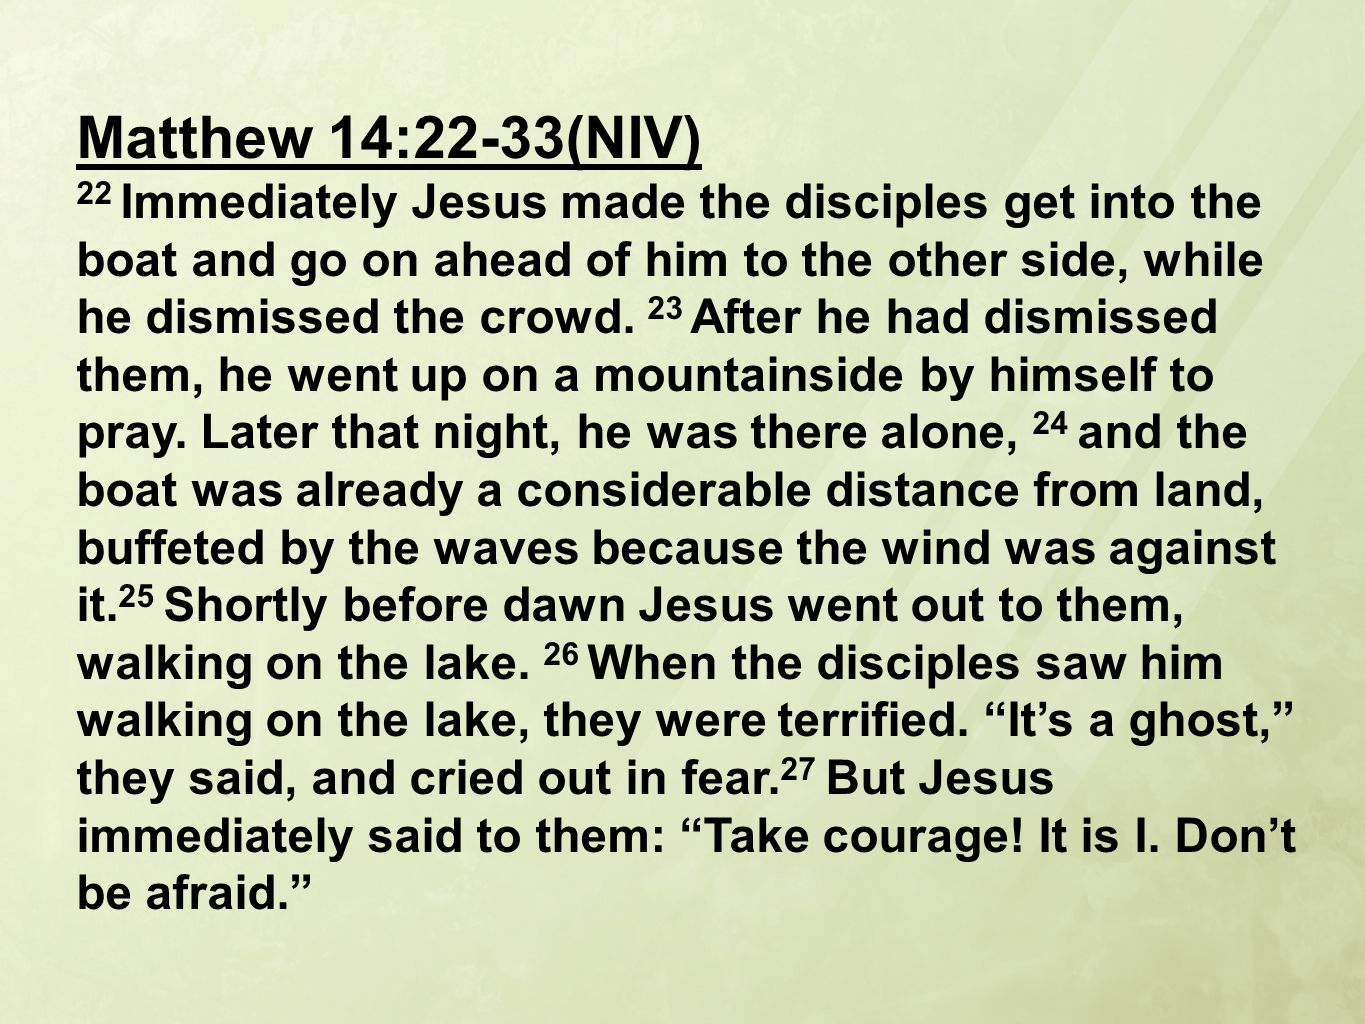 Matthew 14:22-33(NIV) 22 Immediately Jesus made the disciples get into the boat and go on ahead of him to the other side, while he dismissed the crowd